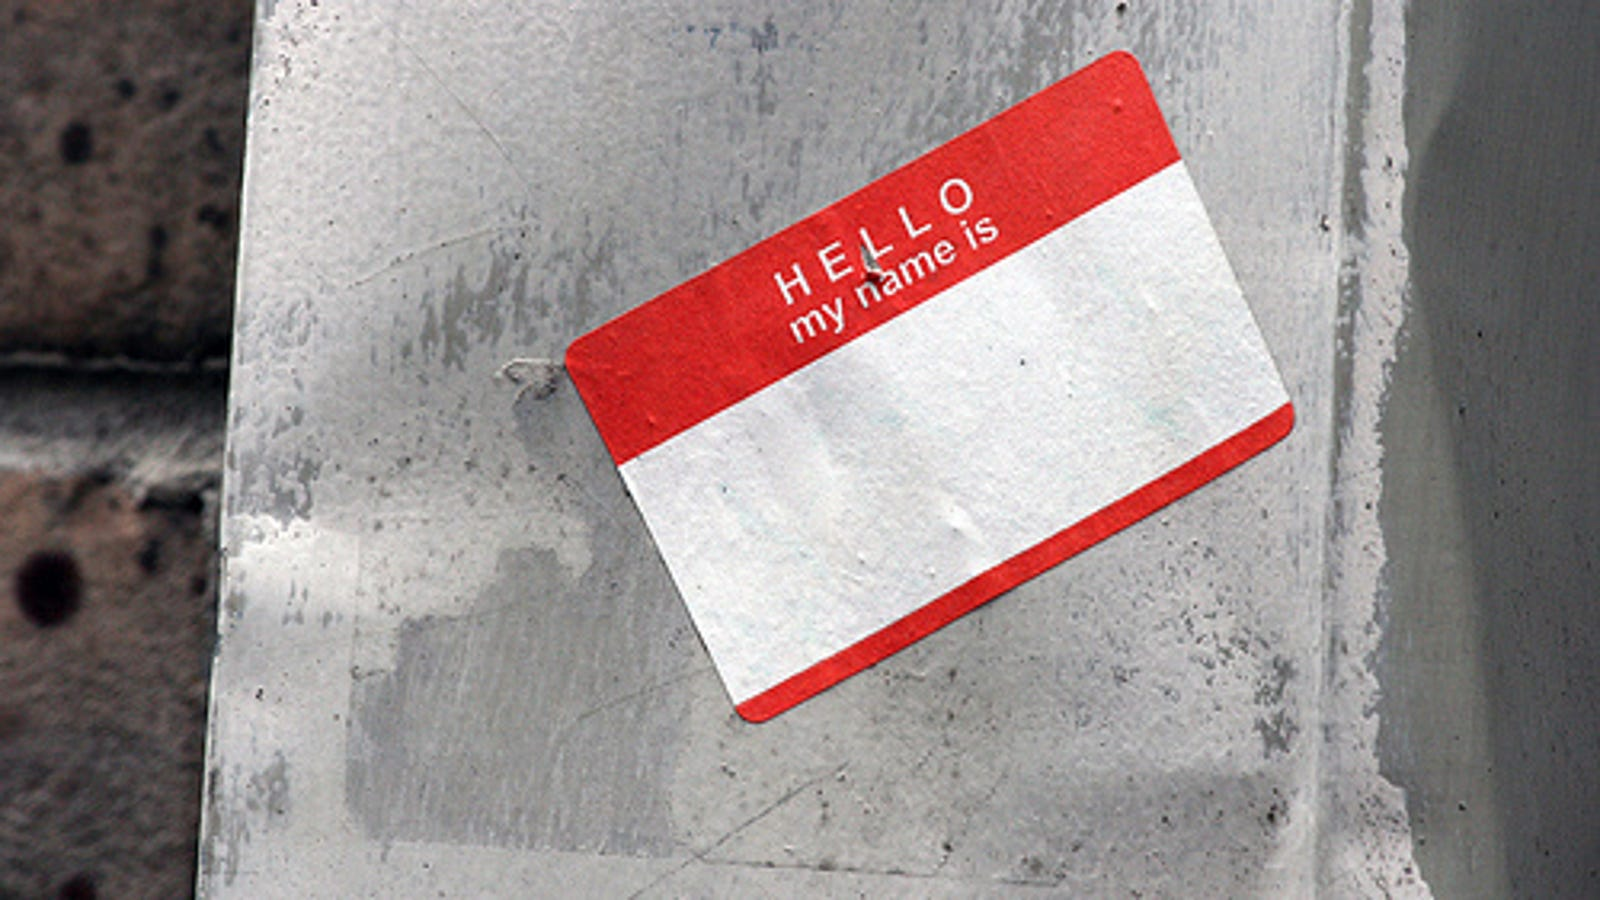 How to Remember People's Names (and Deal with Unusual Names)